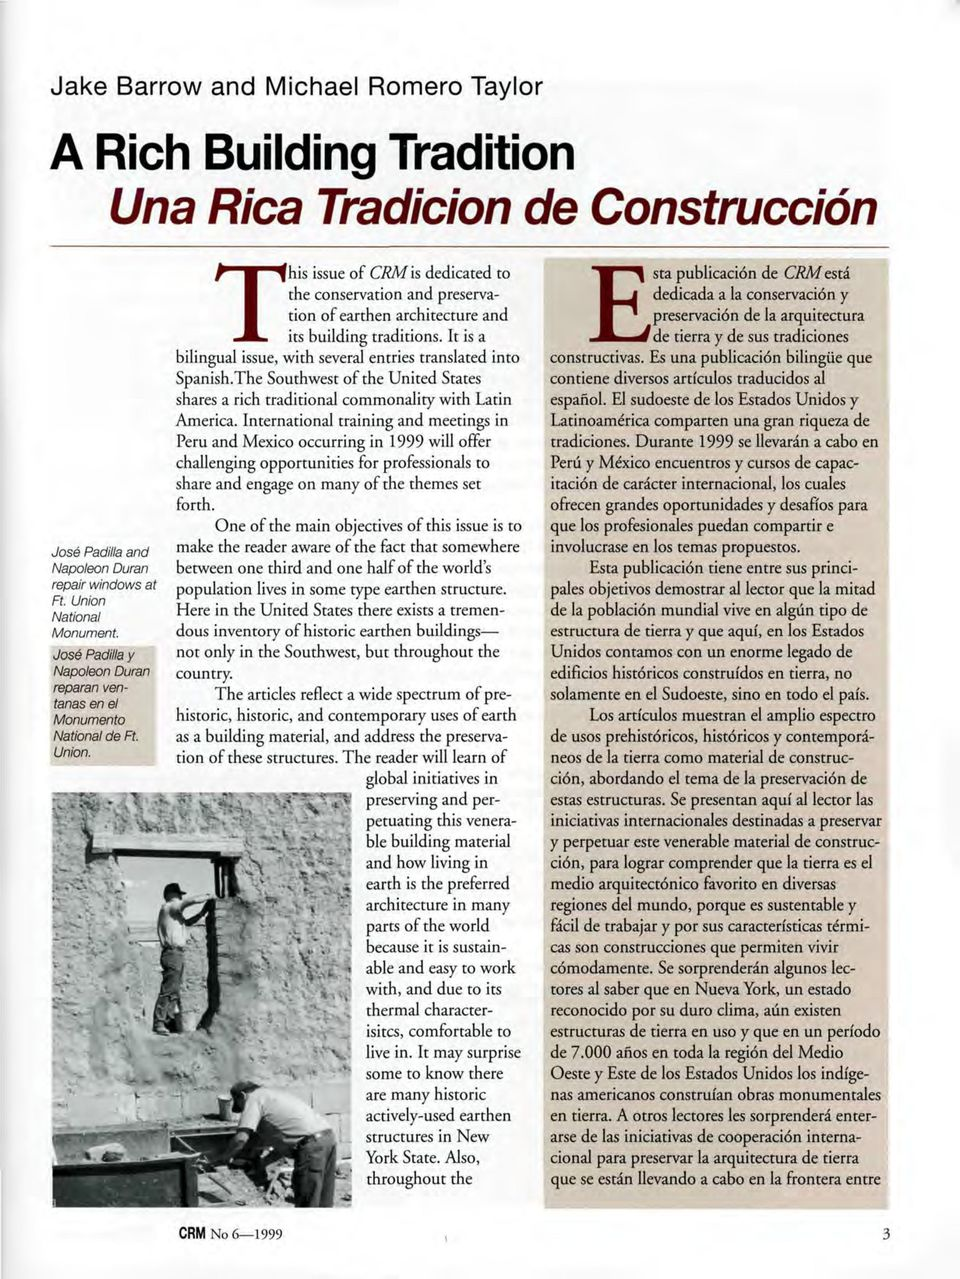 This issue of CRM is dedicated to the conservation and preservation of earthen architecture and its building traditions. It is a bilingual issue, with several entries translated into Spanish.